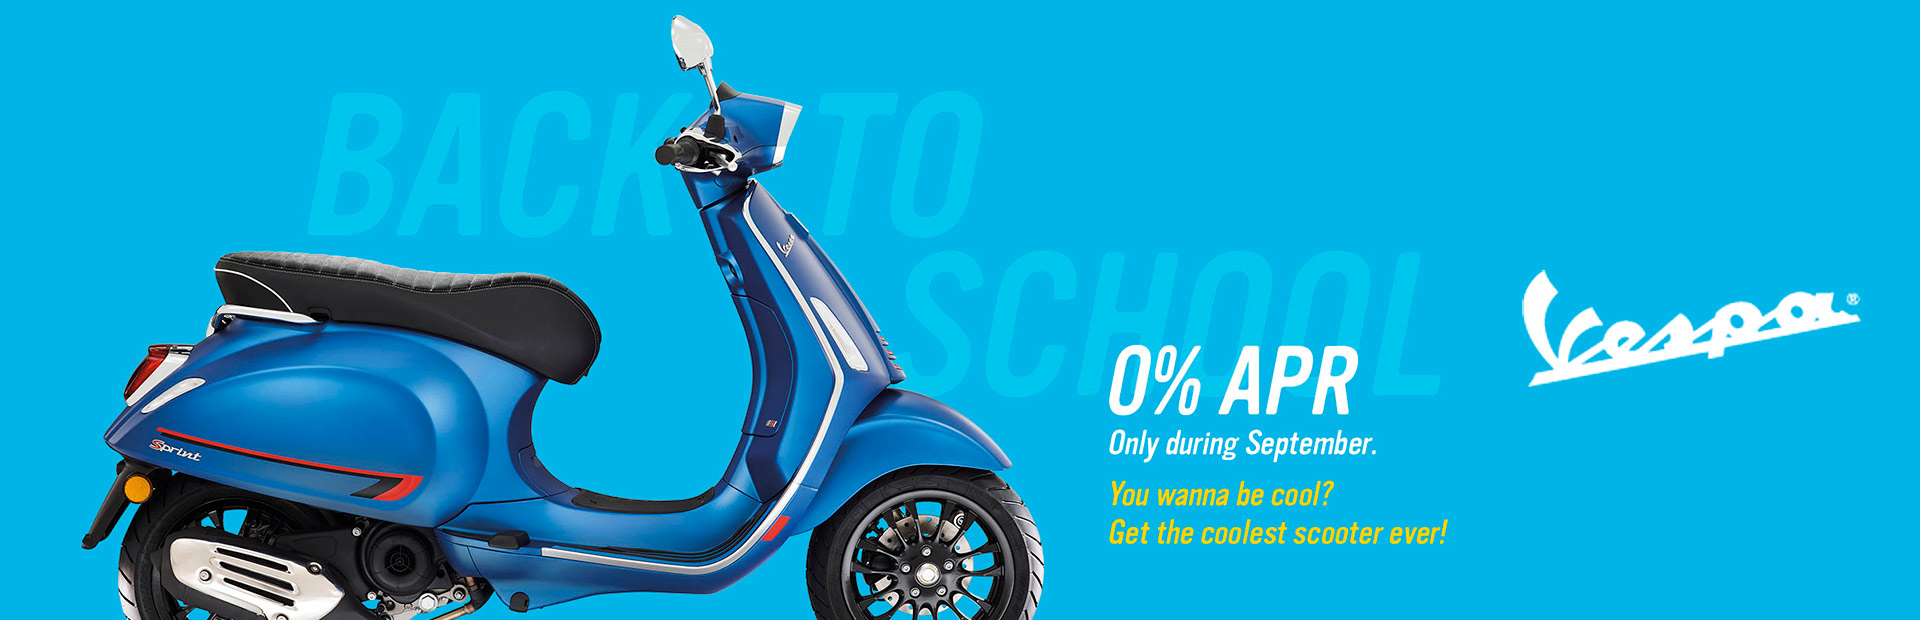 "Vespa: VESPA ""BACK TO SCHOOL"" 2019"